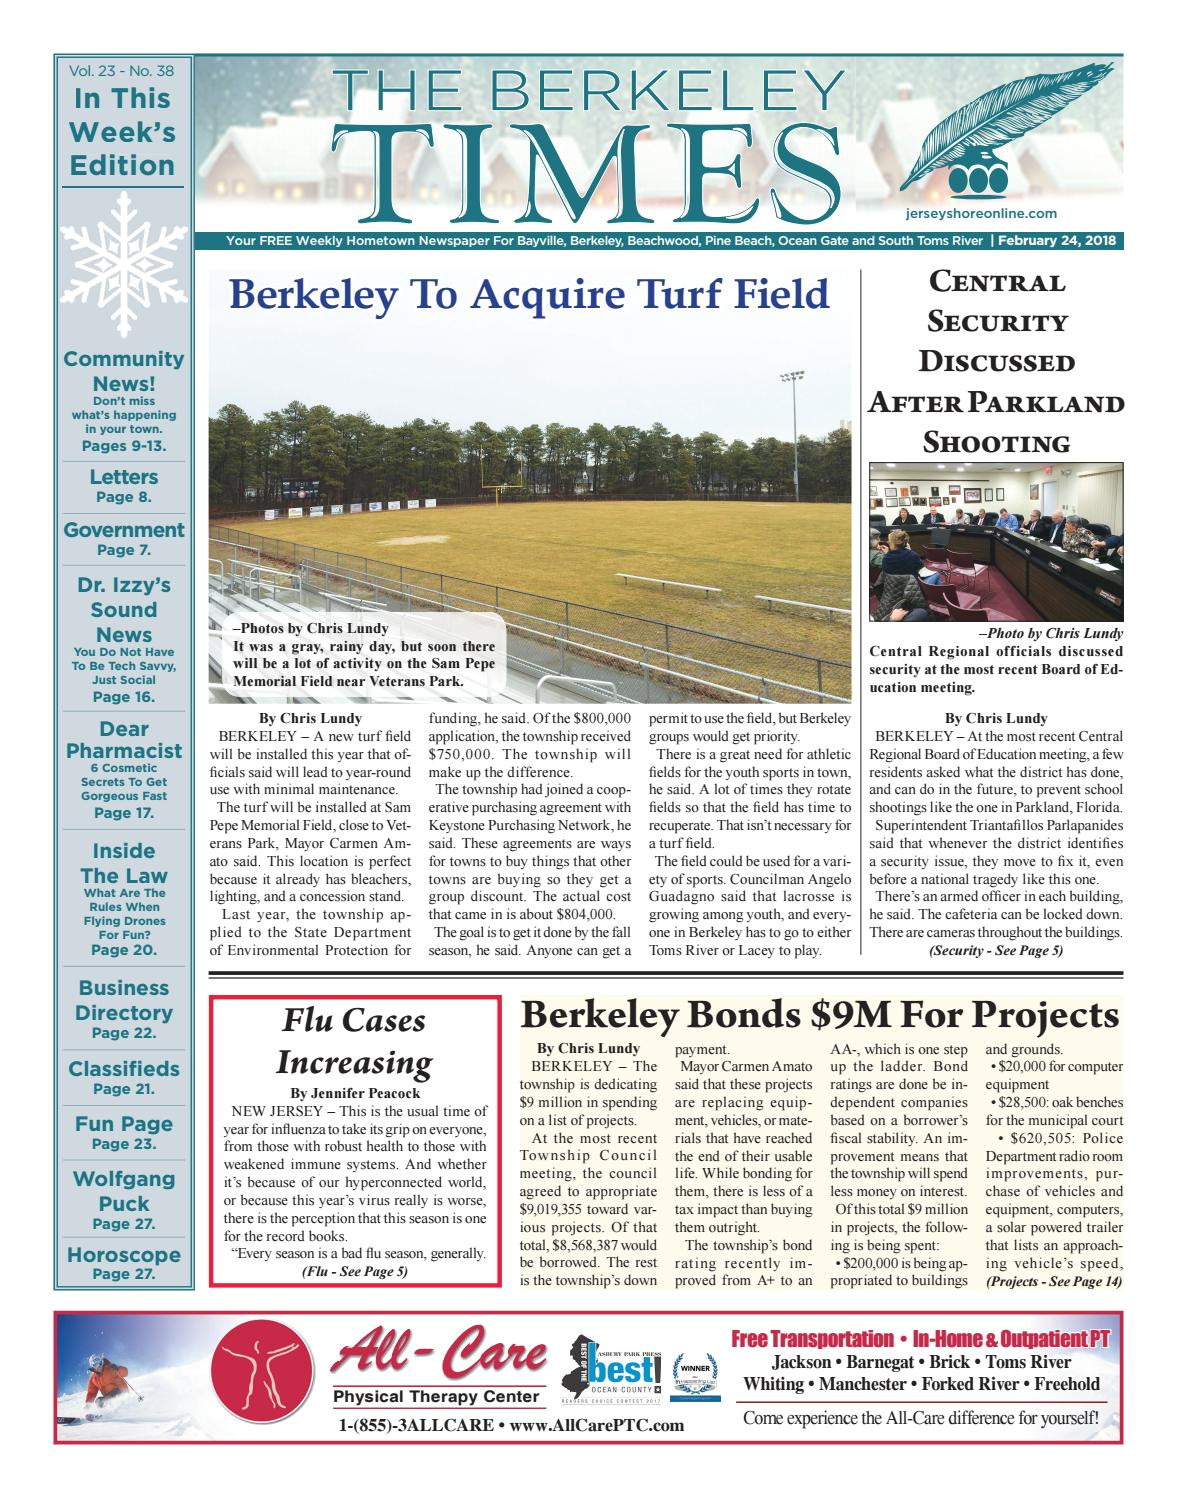 2018 02 24 the berkeley times by micromedia publications jersey shore online issuu